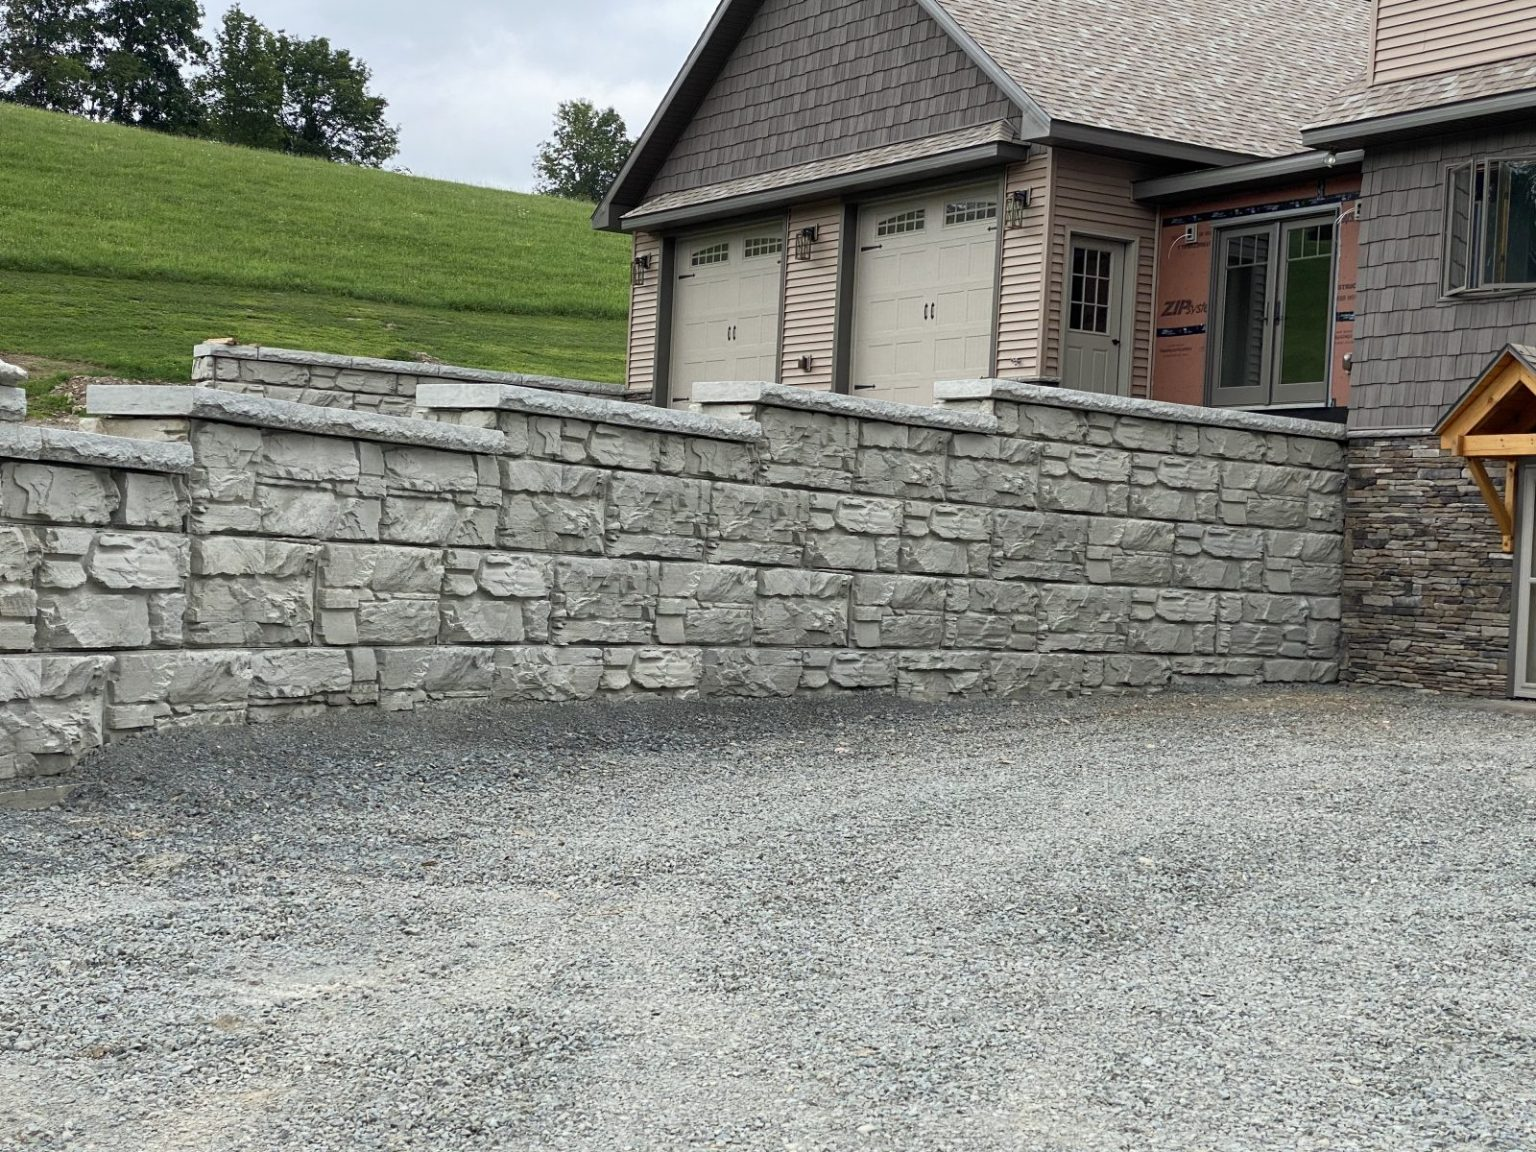 MaxumStone Retaining Wall used to extend a driveway. It features a step-up wall leading up to the home.